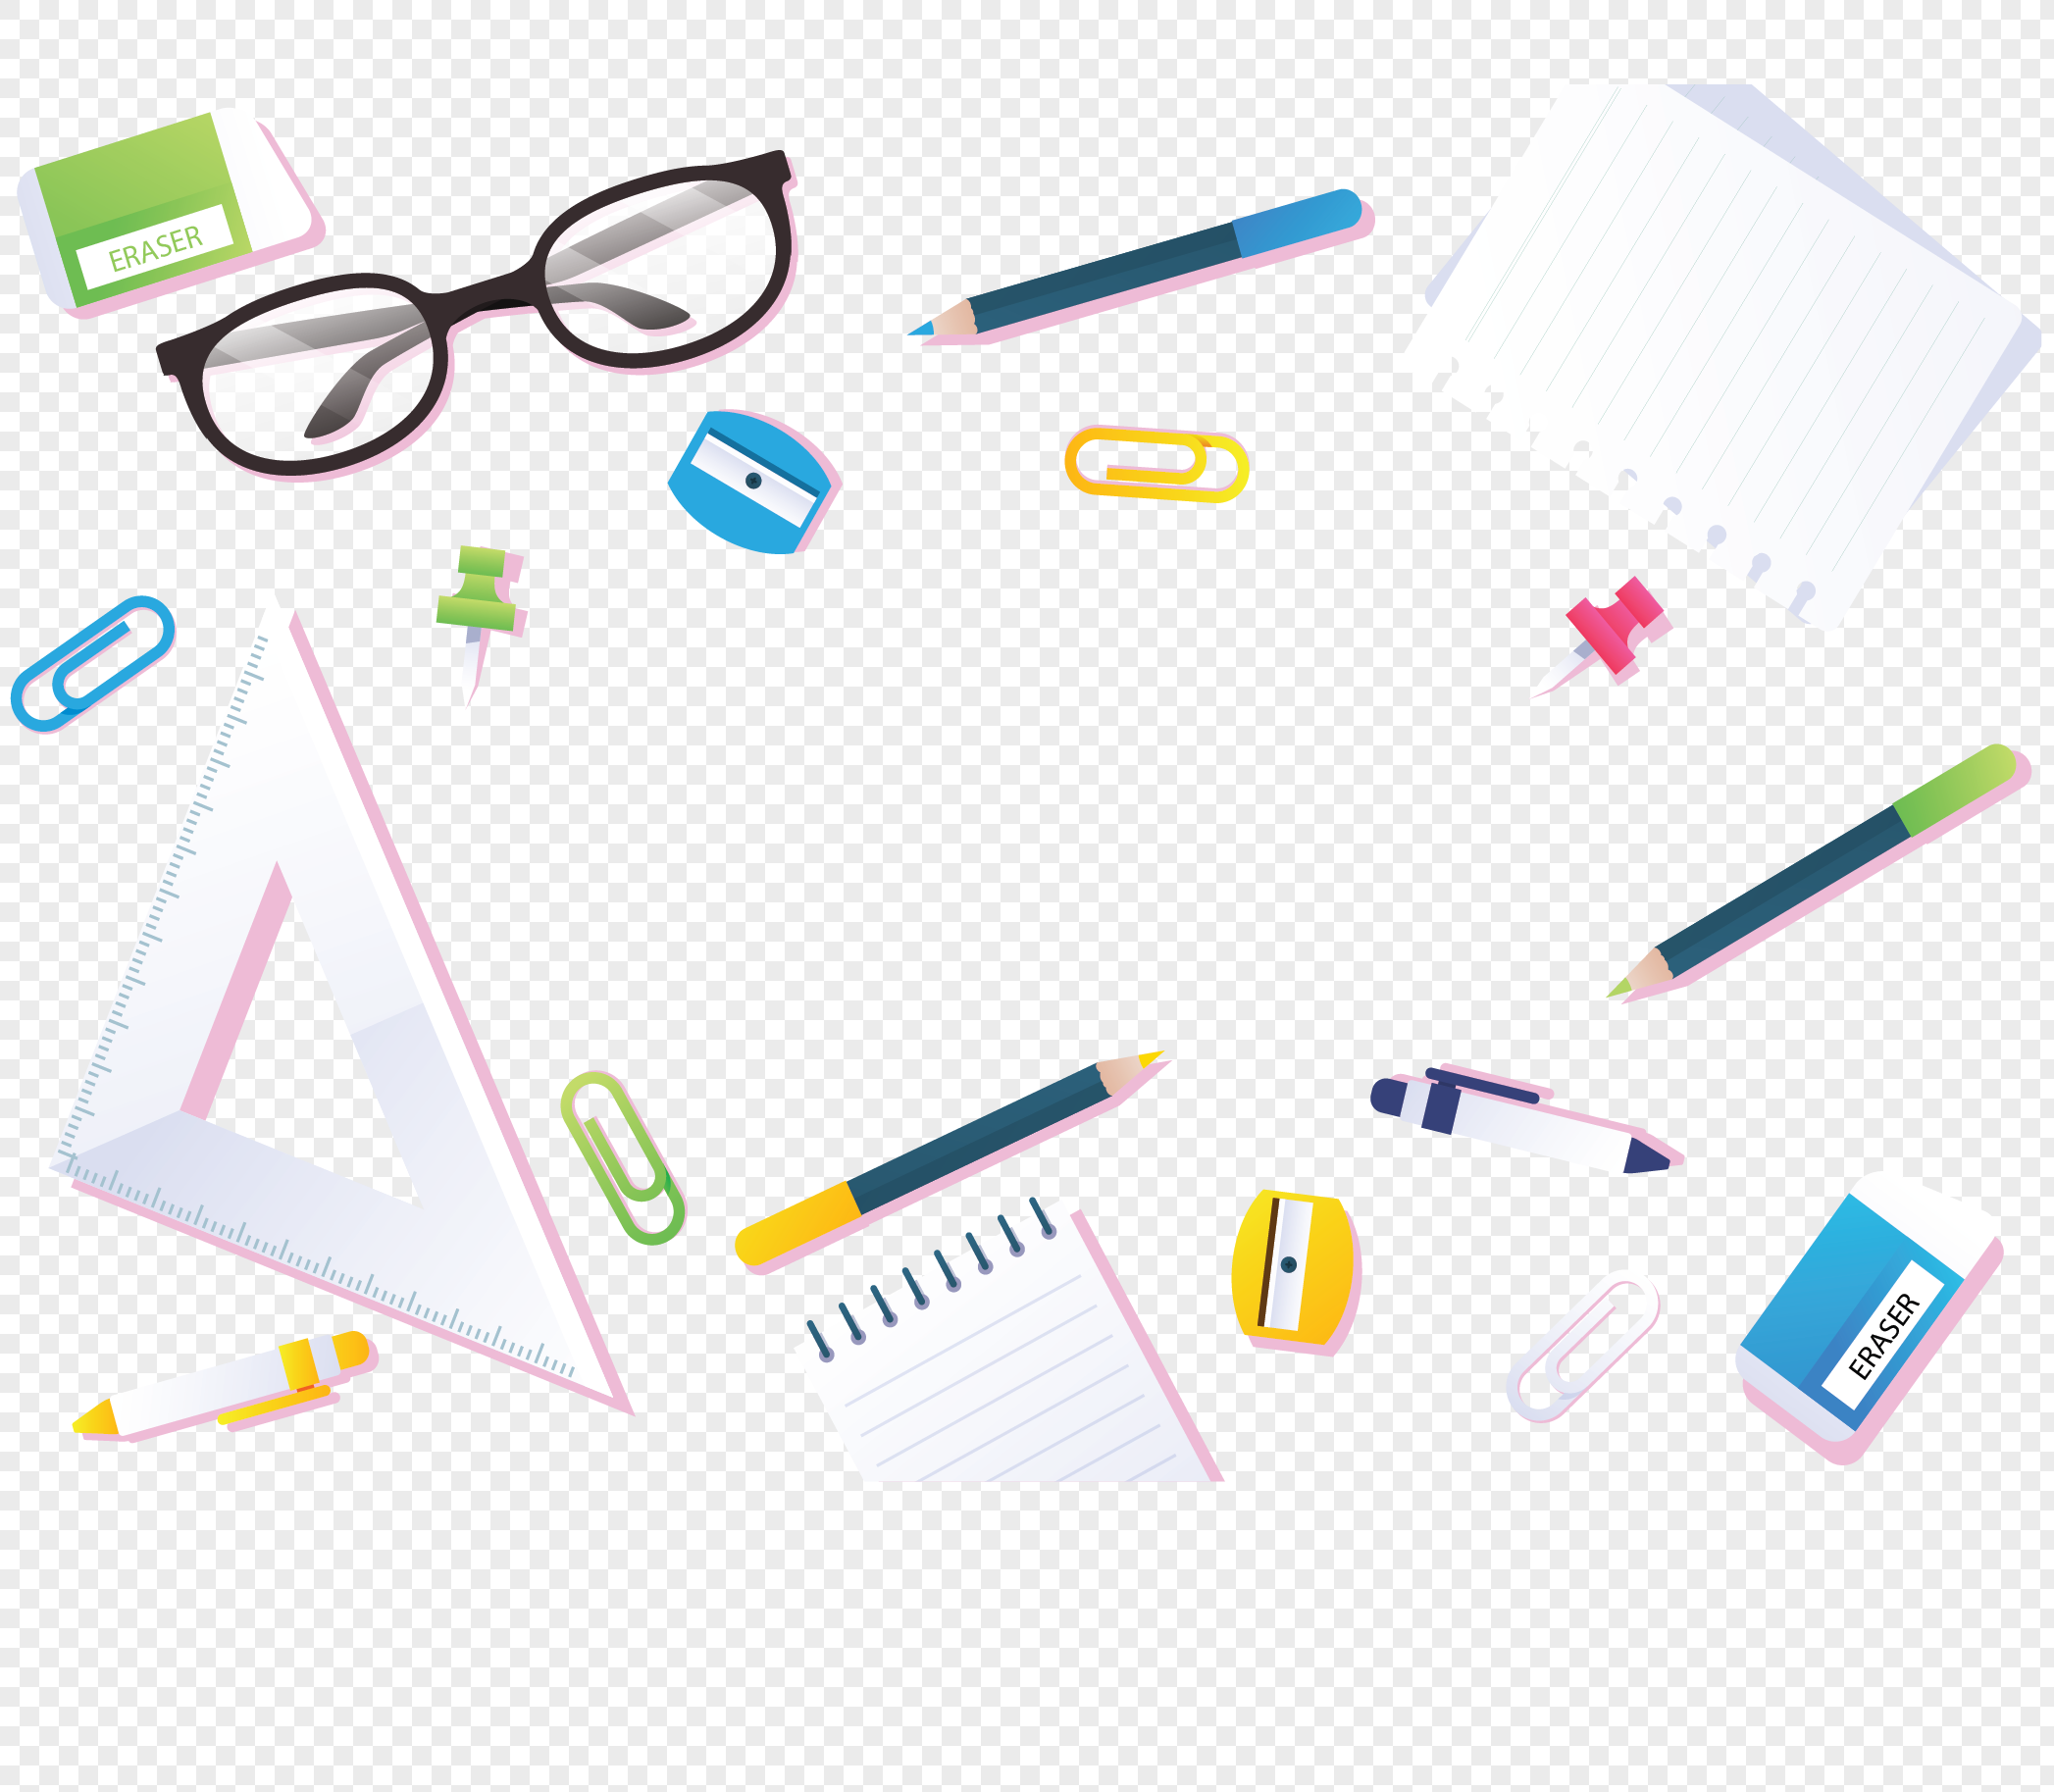 stationery border png image picture free download 400536812